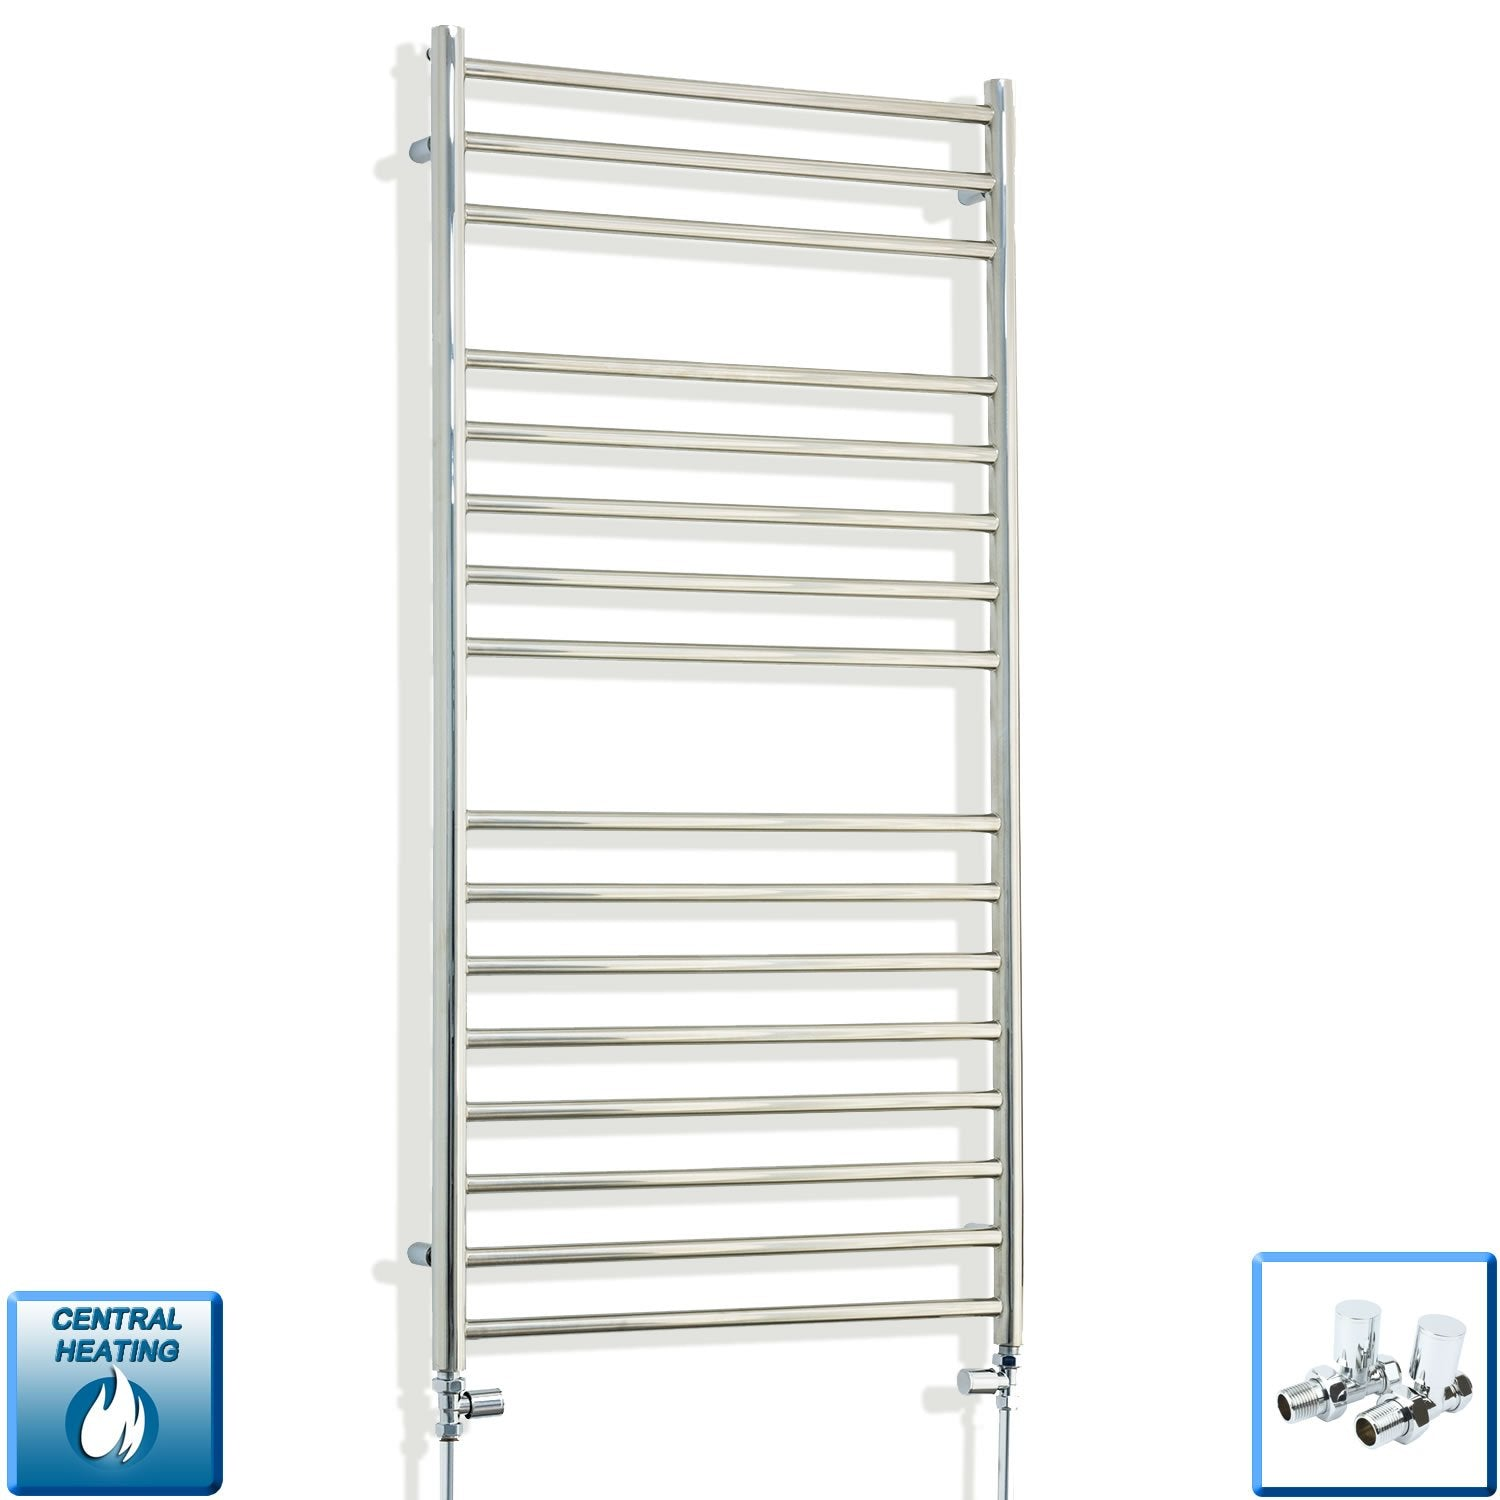 600mm Wide 1200mm High Stainless Steel Polished Heated Flat Towel Rail Radiator Central heating,With Straight Inline Valves